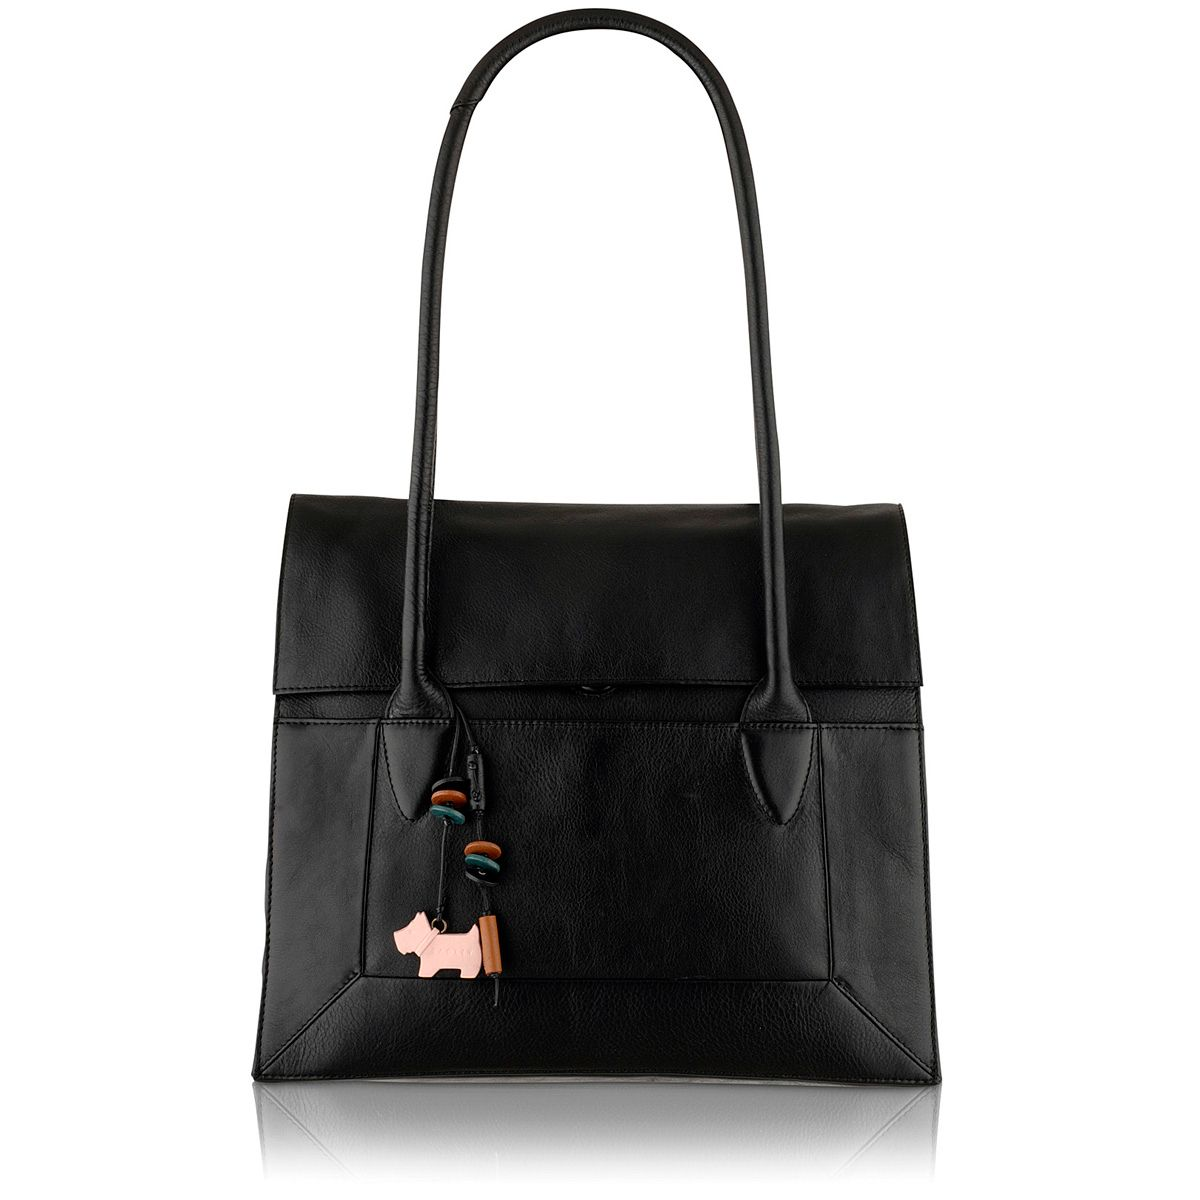 Border black flapover large leather tote bag